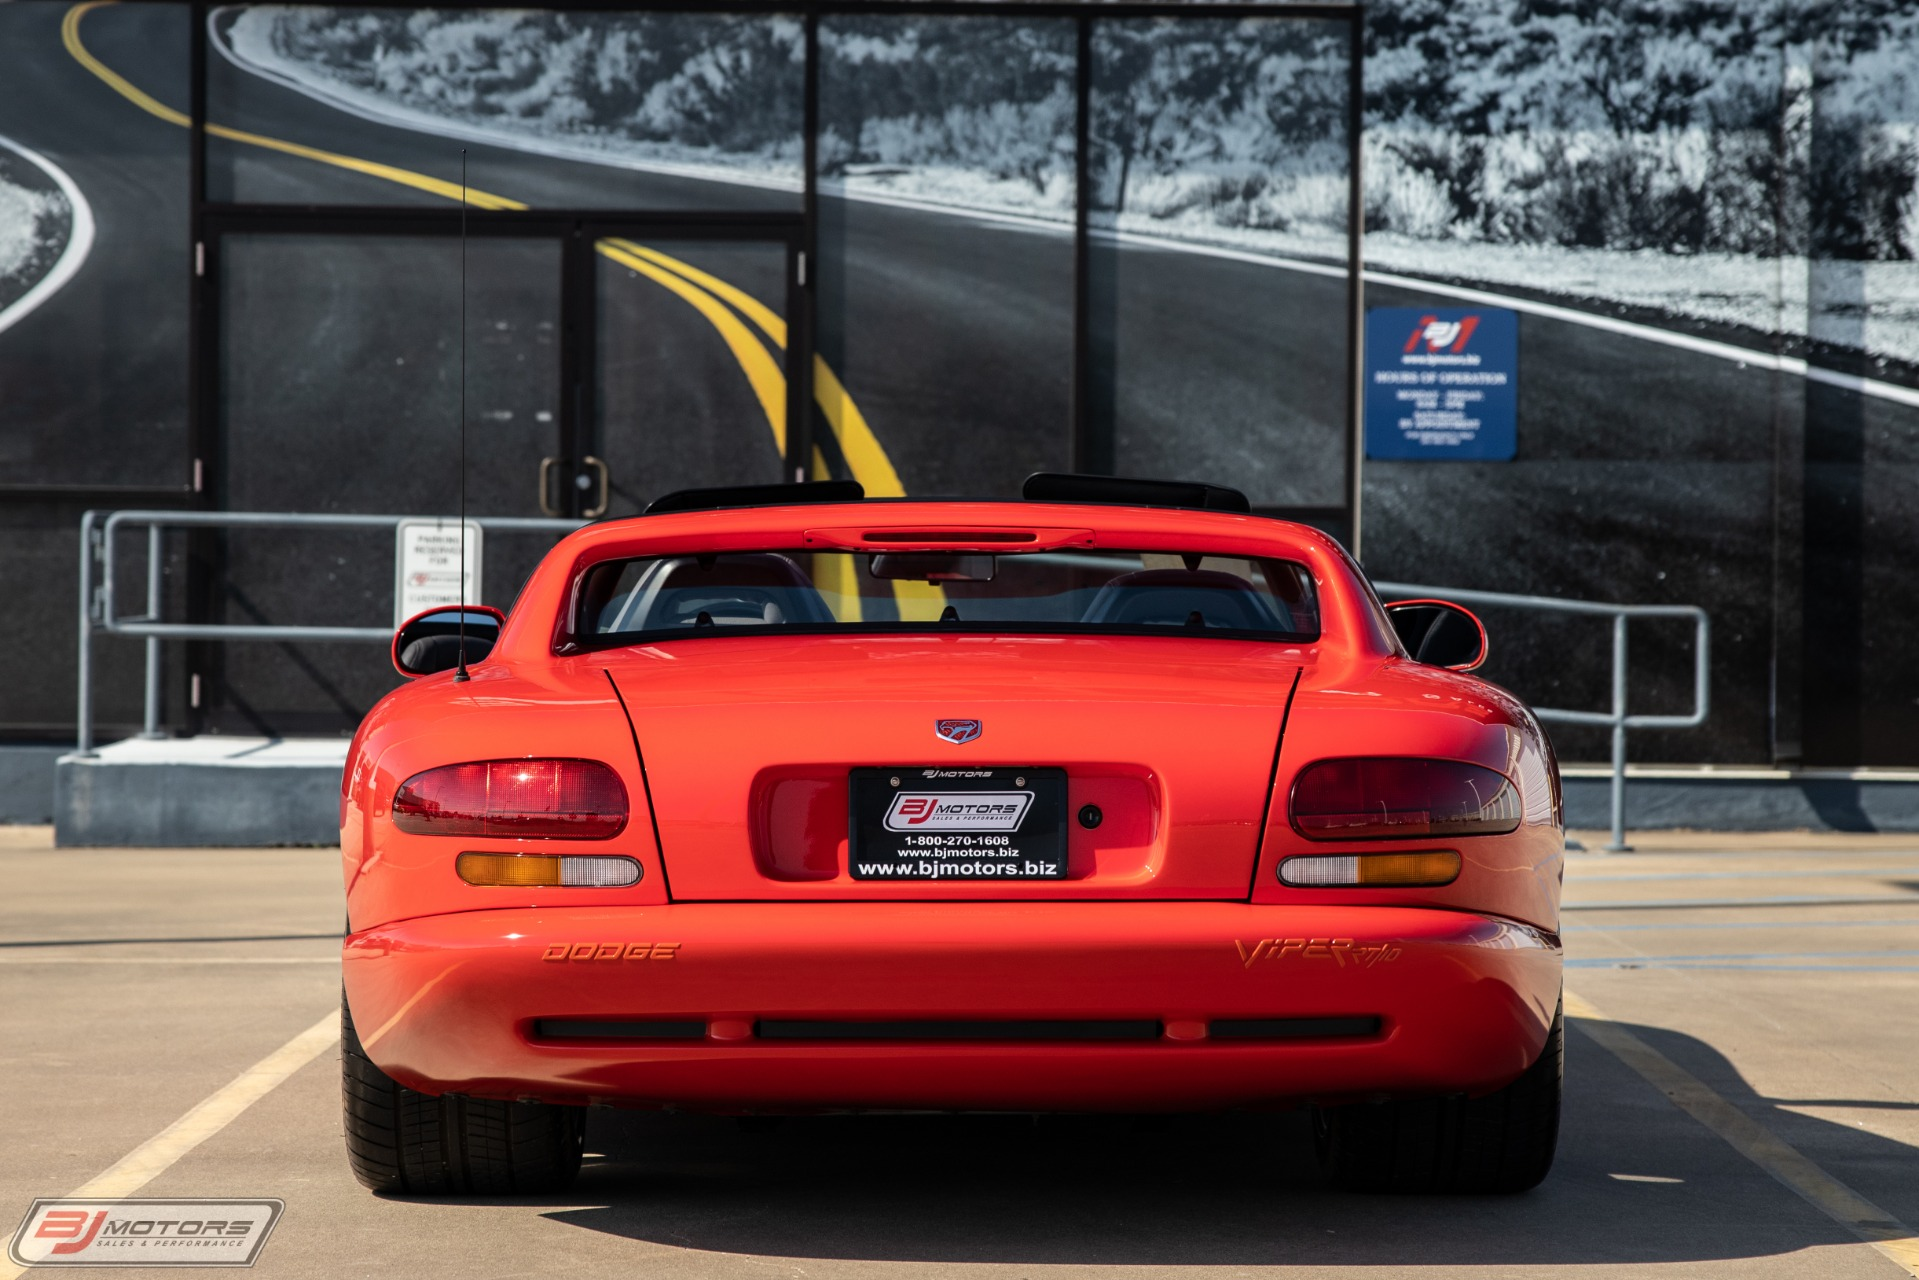 Used-1992-Dodge-Viper-RT/10-with-83-miles